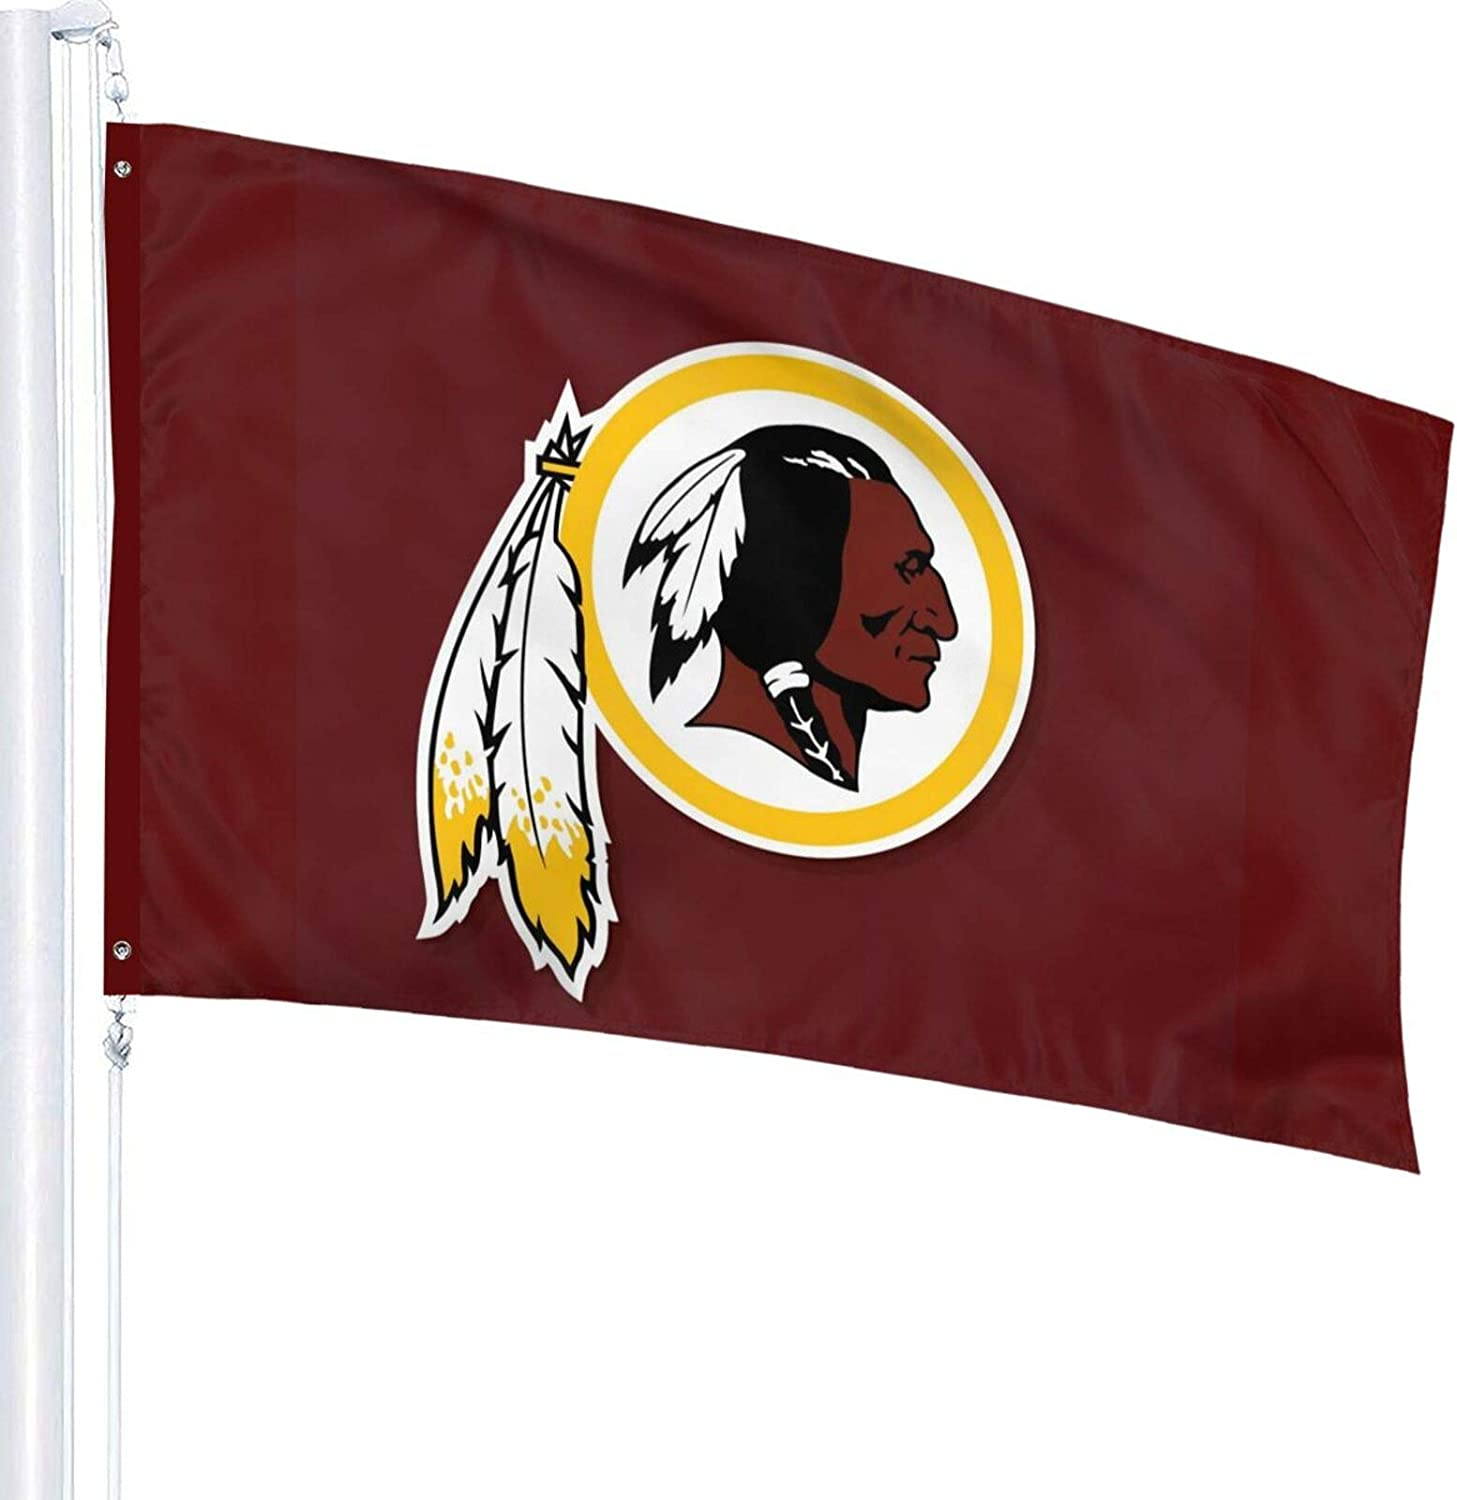 Design Washington Football Single Sided Banner Indoor and Outdoor Sports Flag with Grommets 3x5 Ft (Washington)